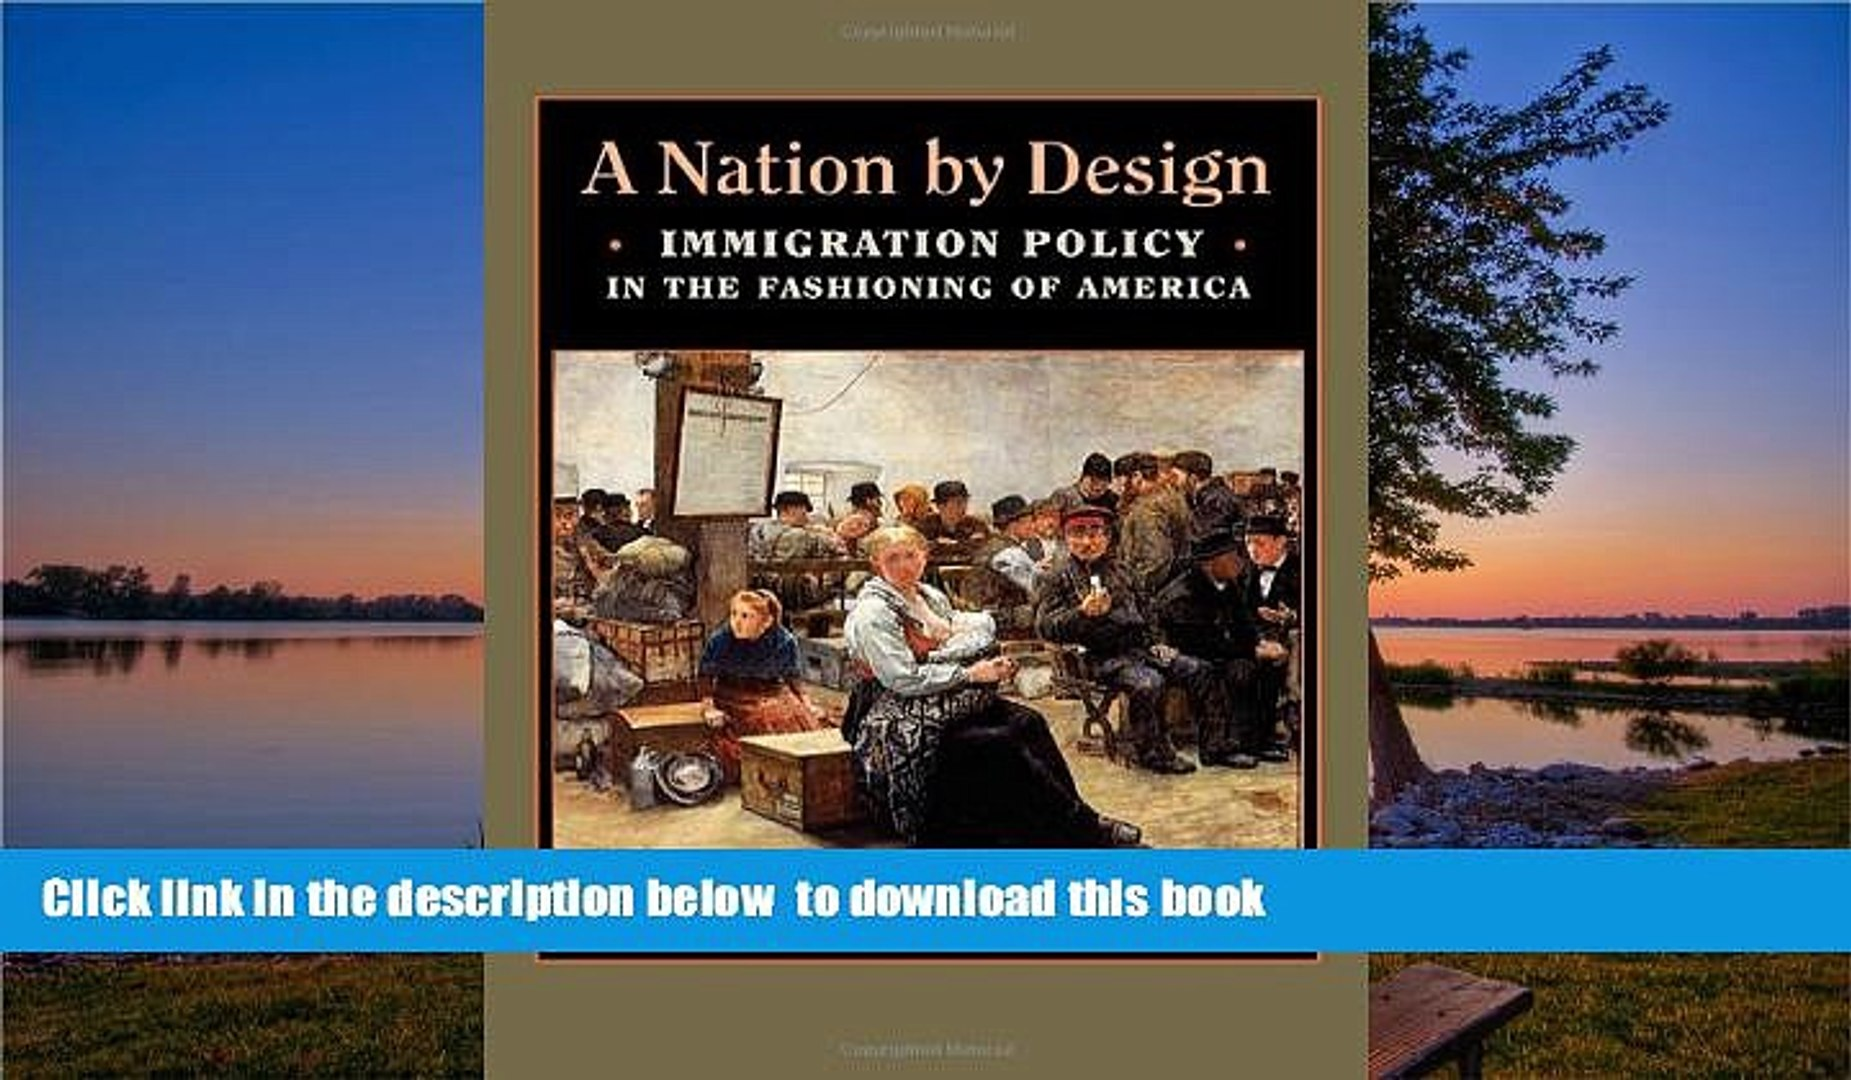 A Nation by Design Immigration Policy in the Fashioning of America